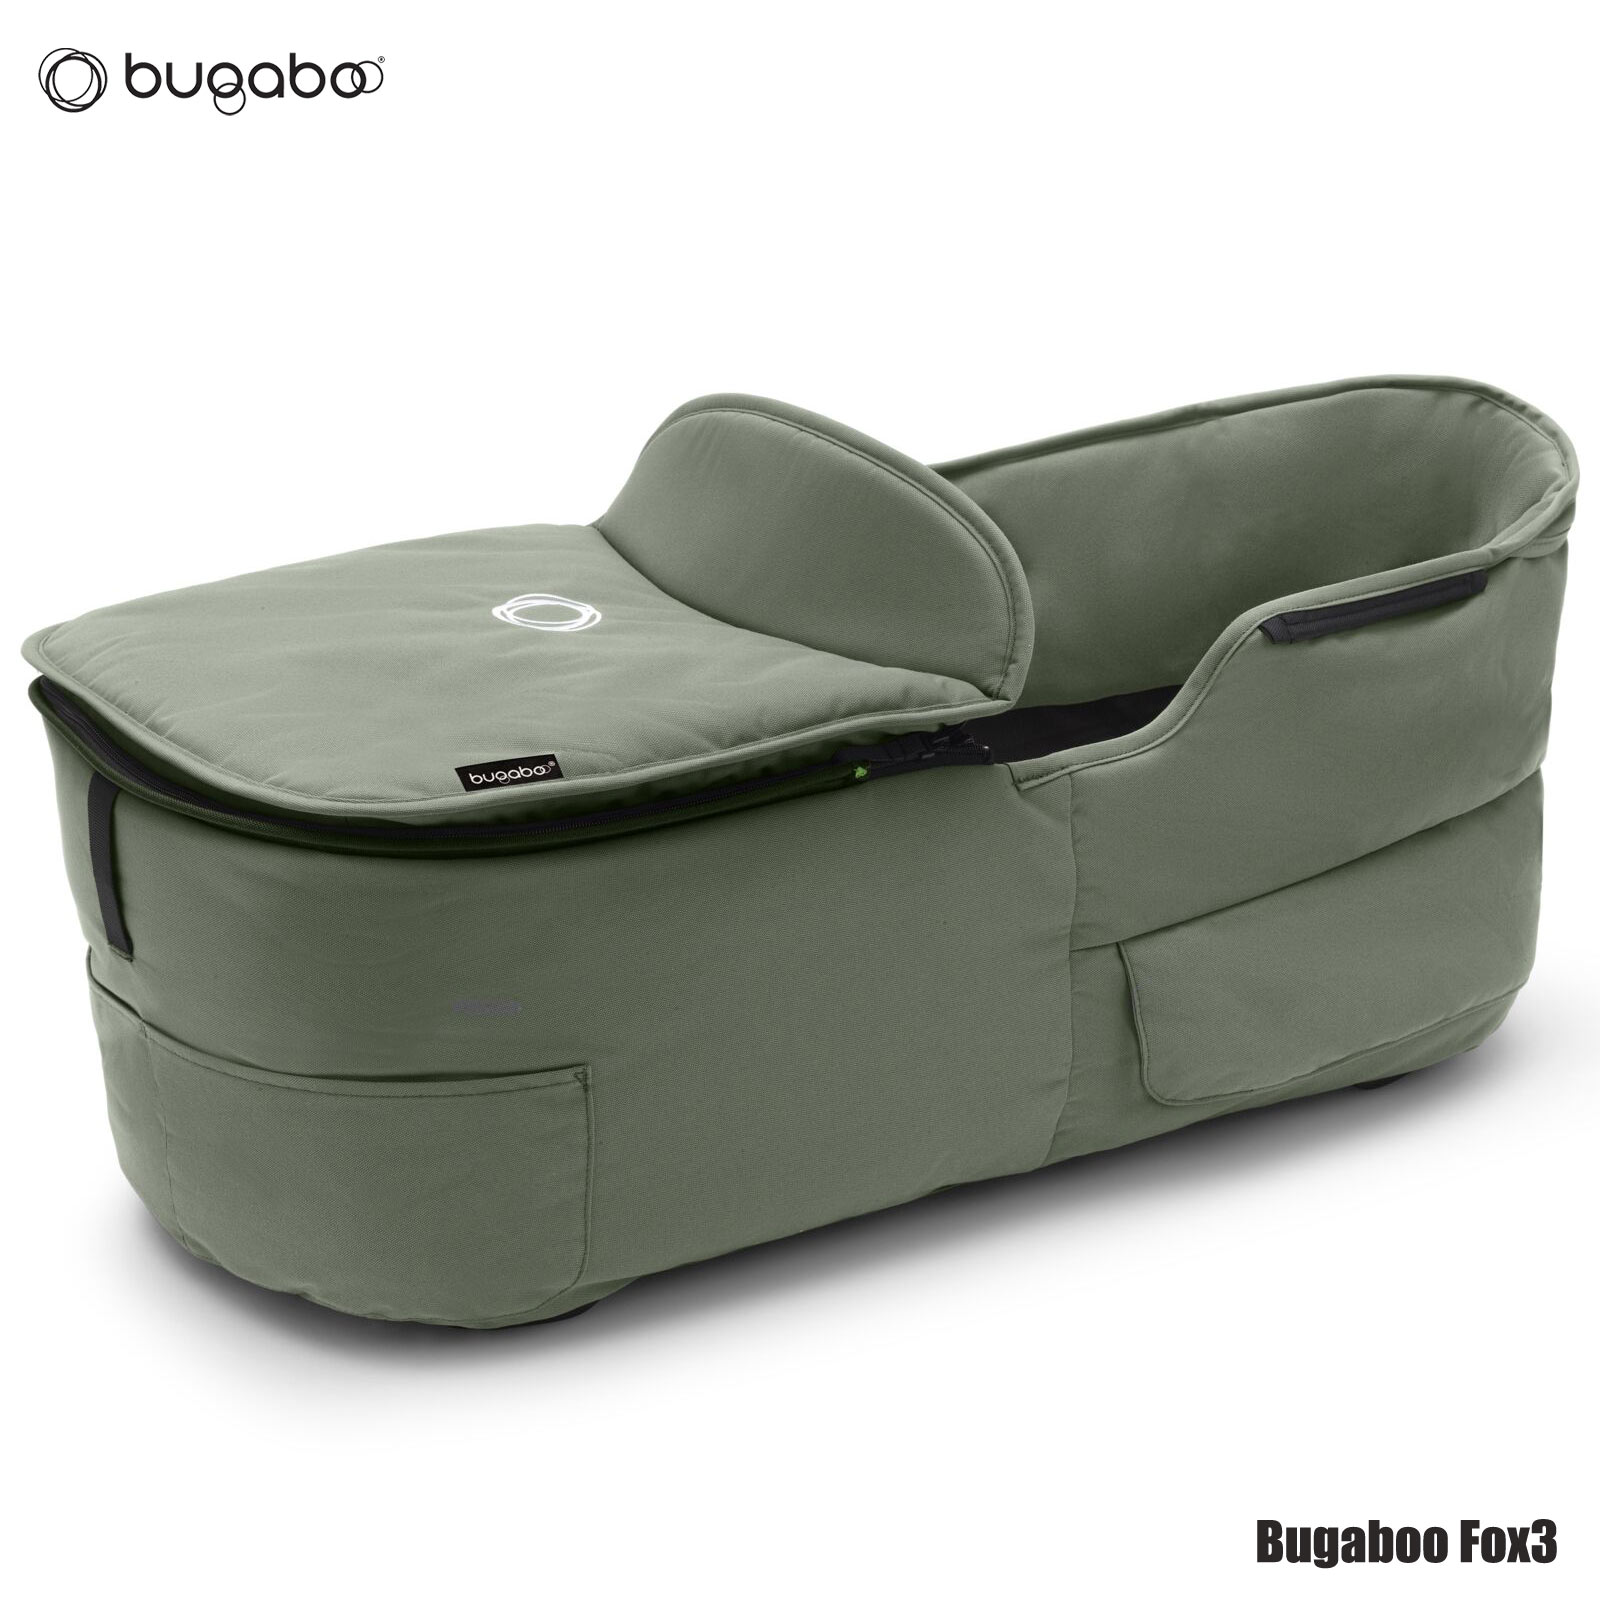 Bugaboo_Fox3_CarryCot_Forre_8F3.jpg